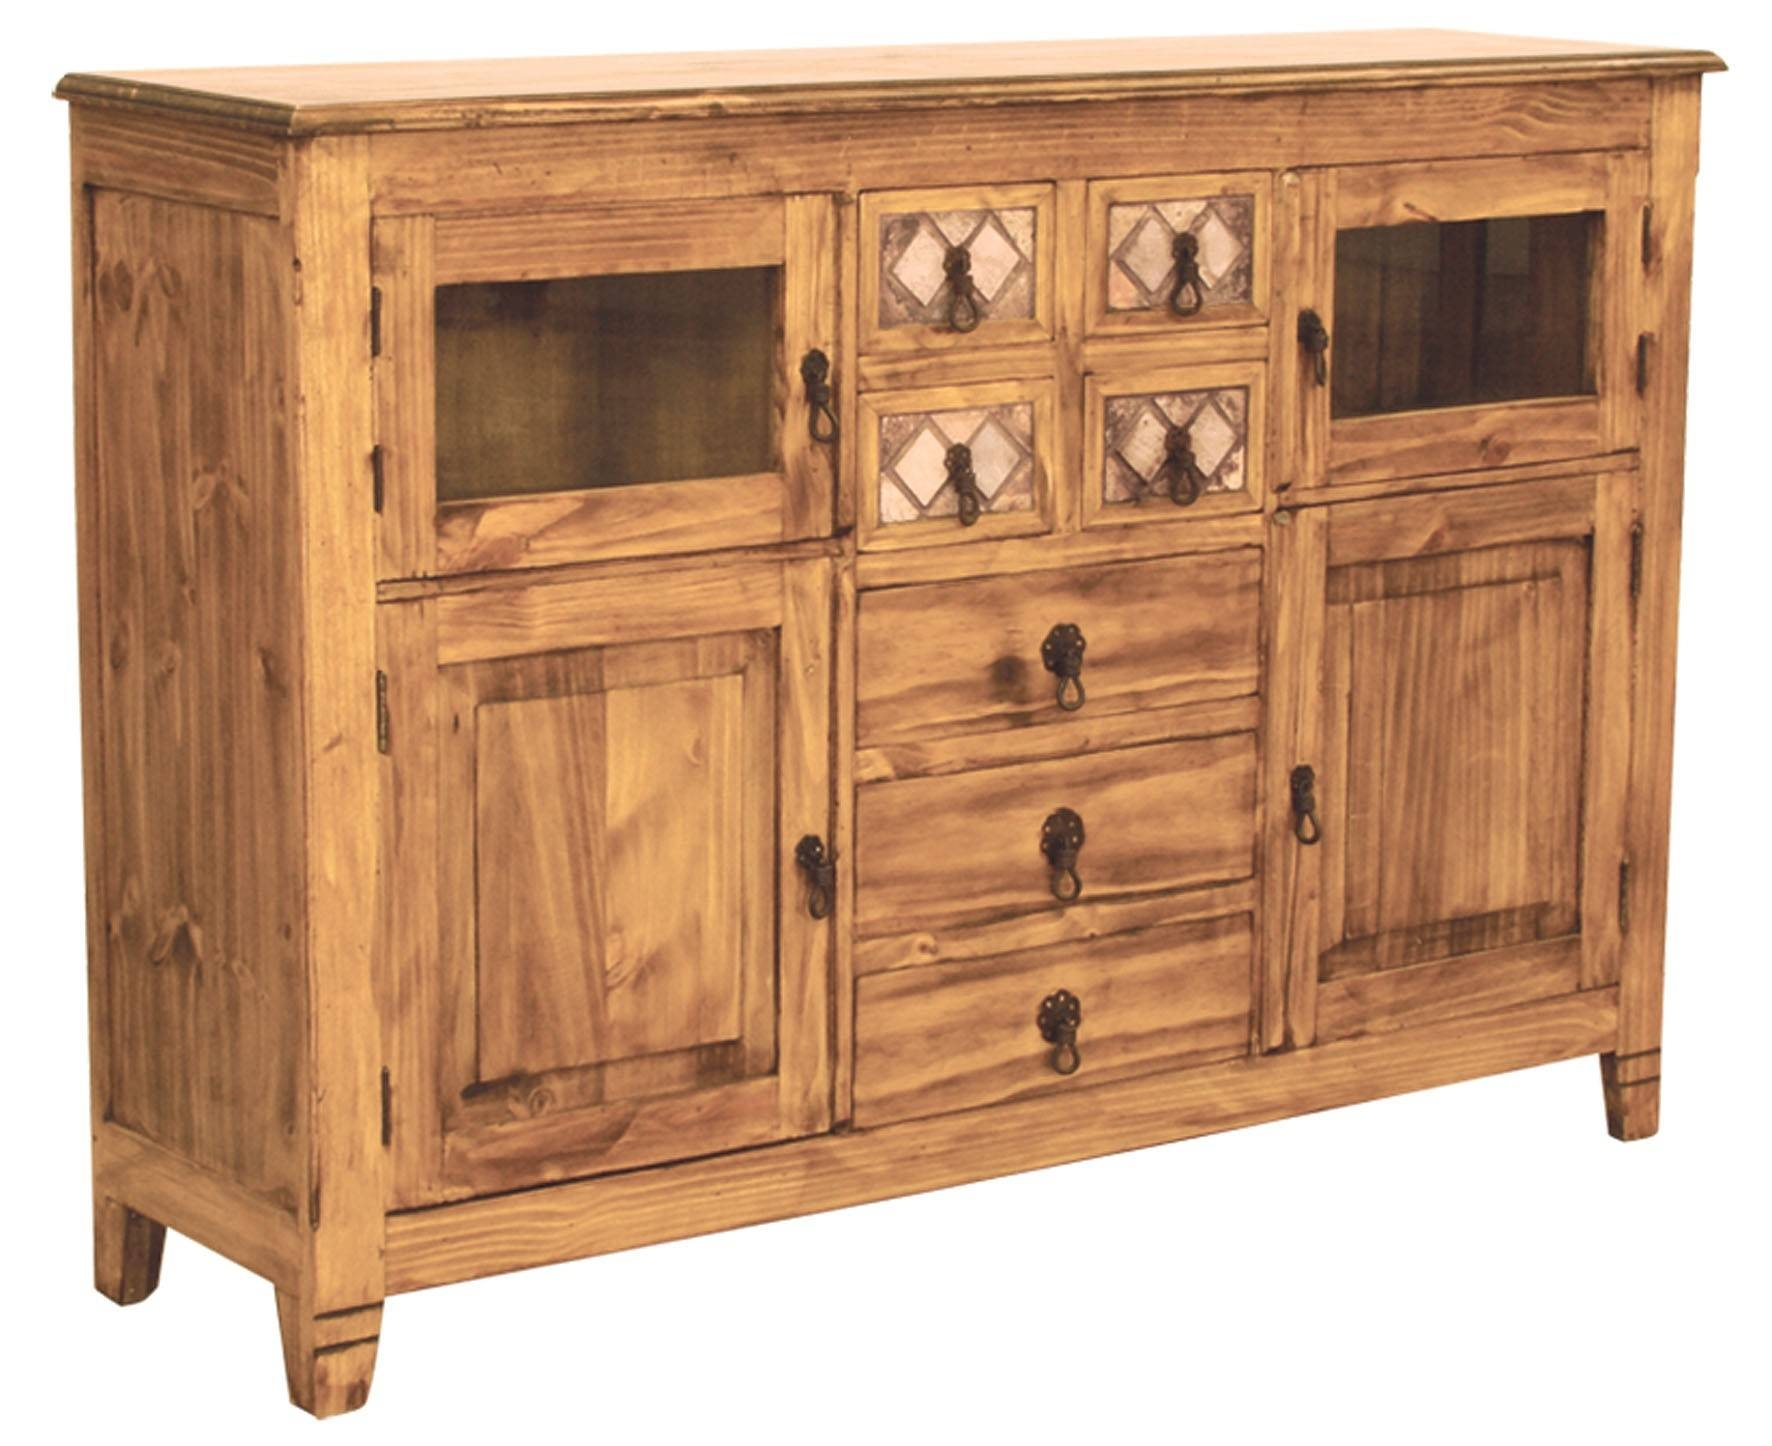 Mexican Pine Furniture | Cievi – Home pertaining to Mexican Sideboards (Image 25 of 30)